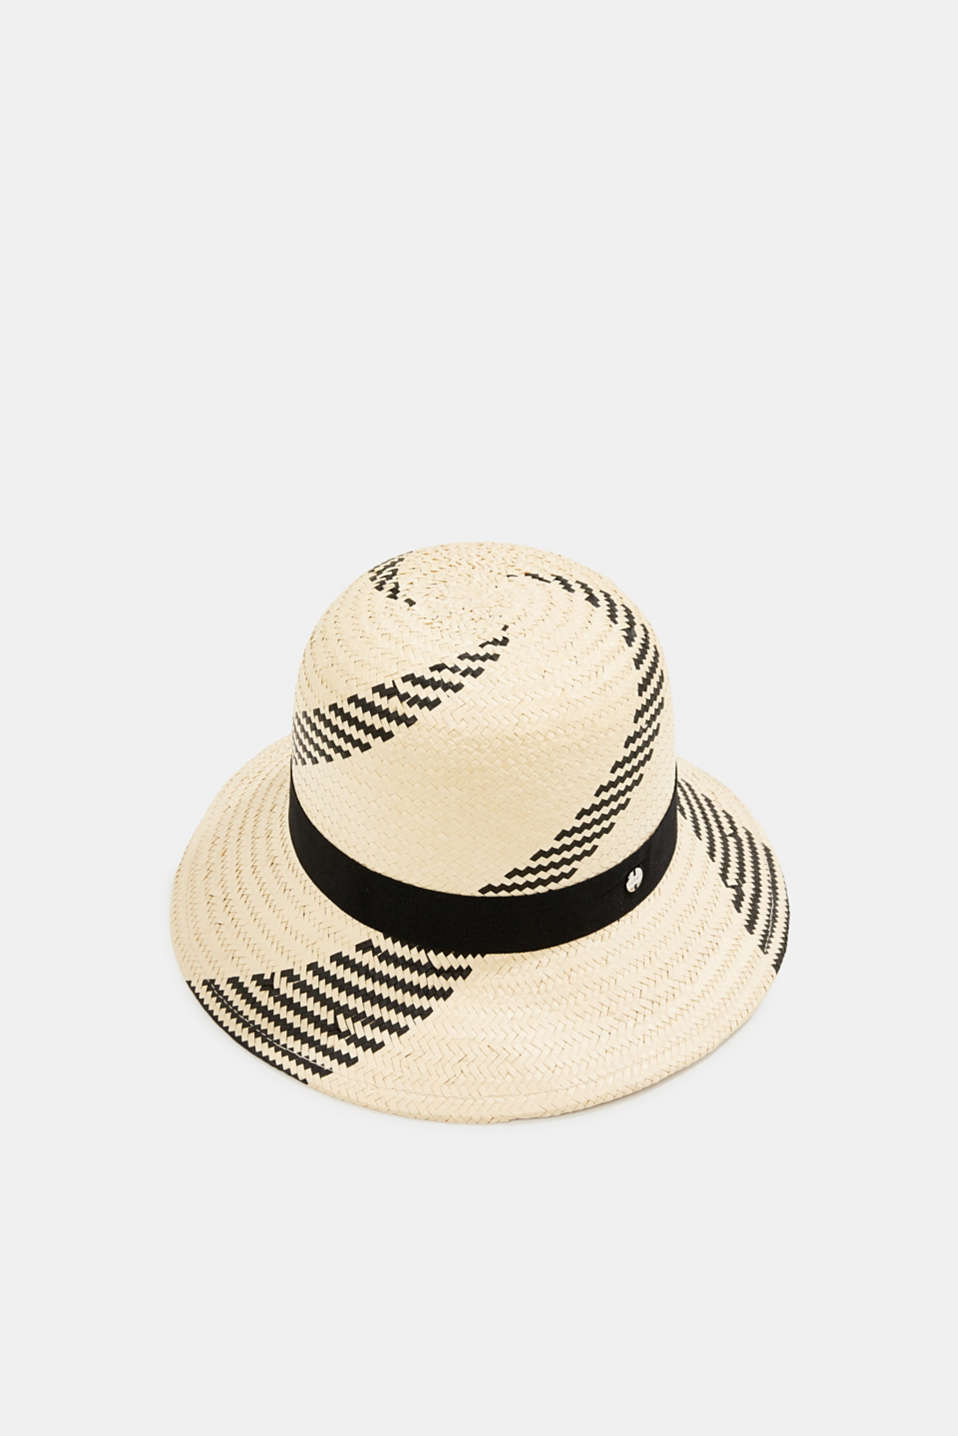 Esprit - Hand-made straw sun hat